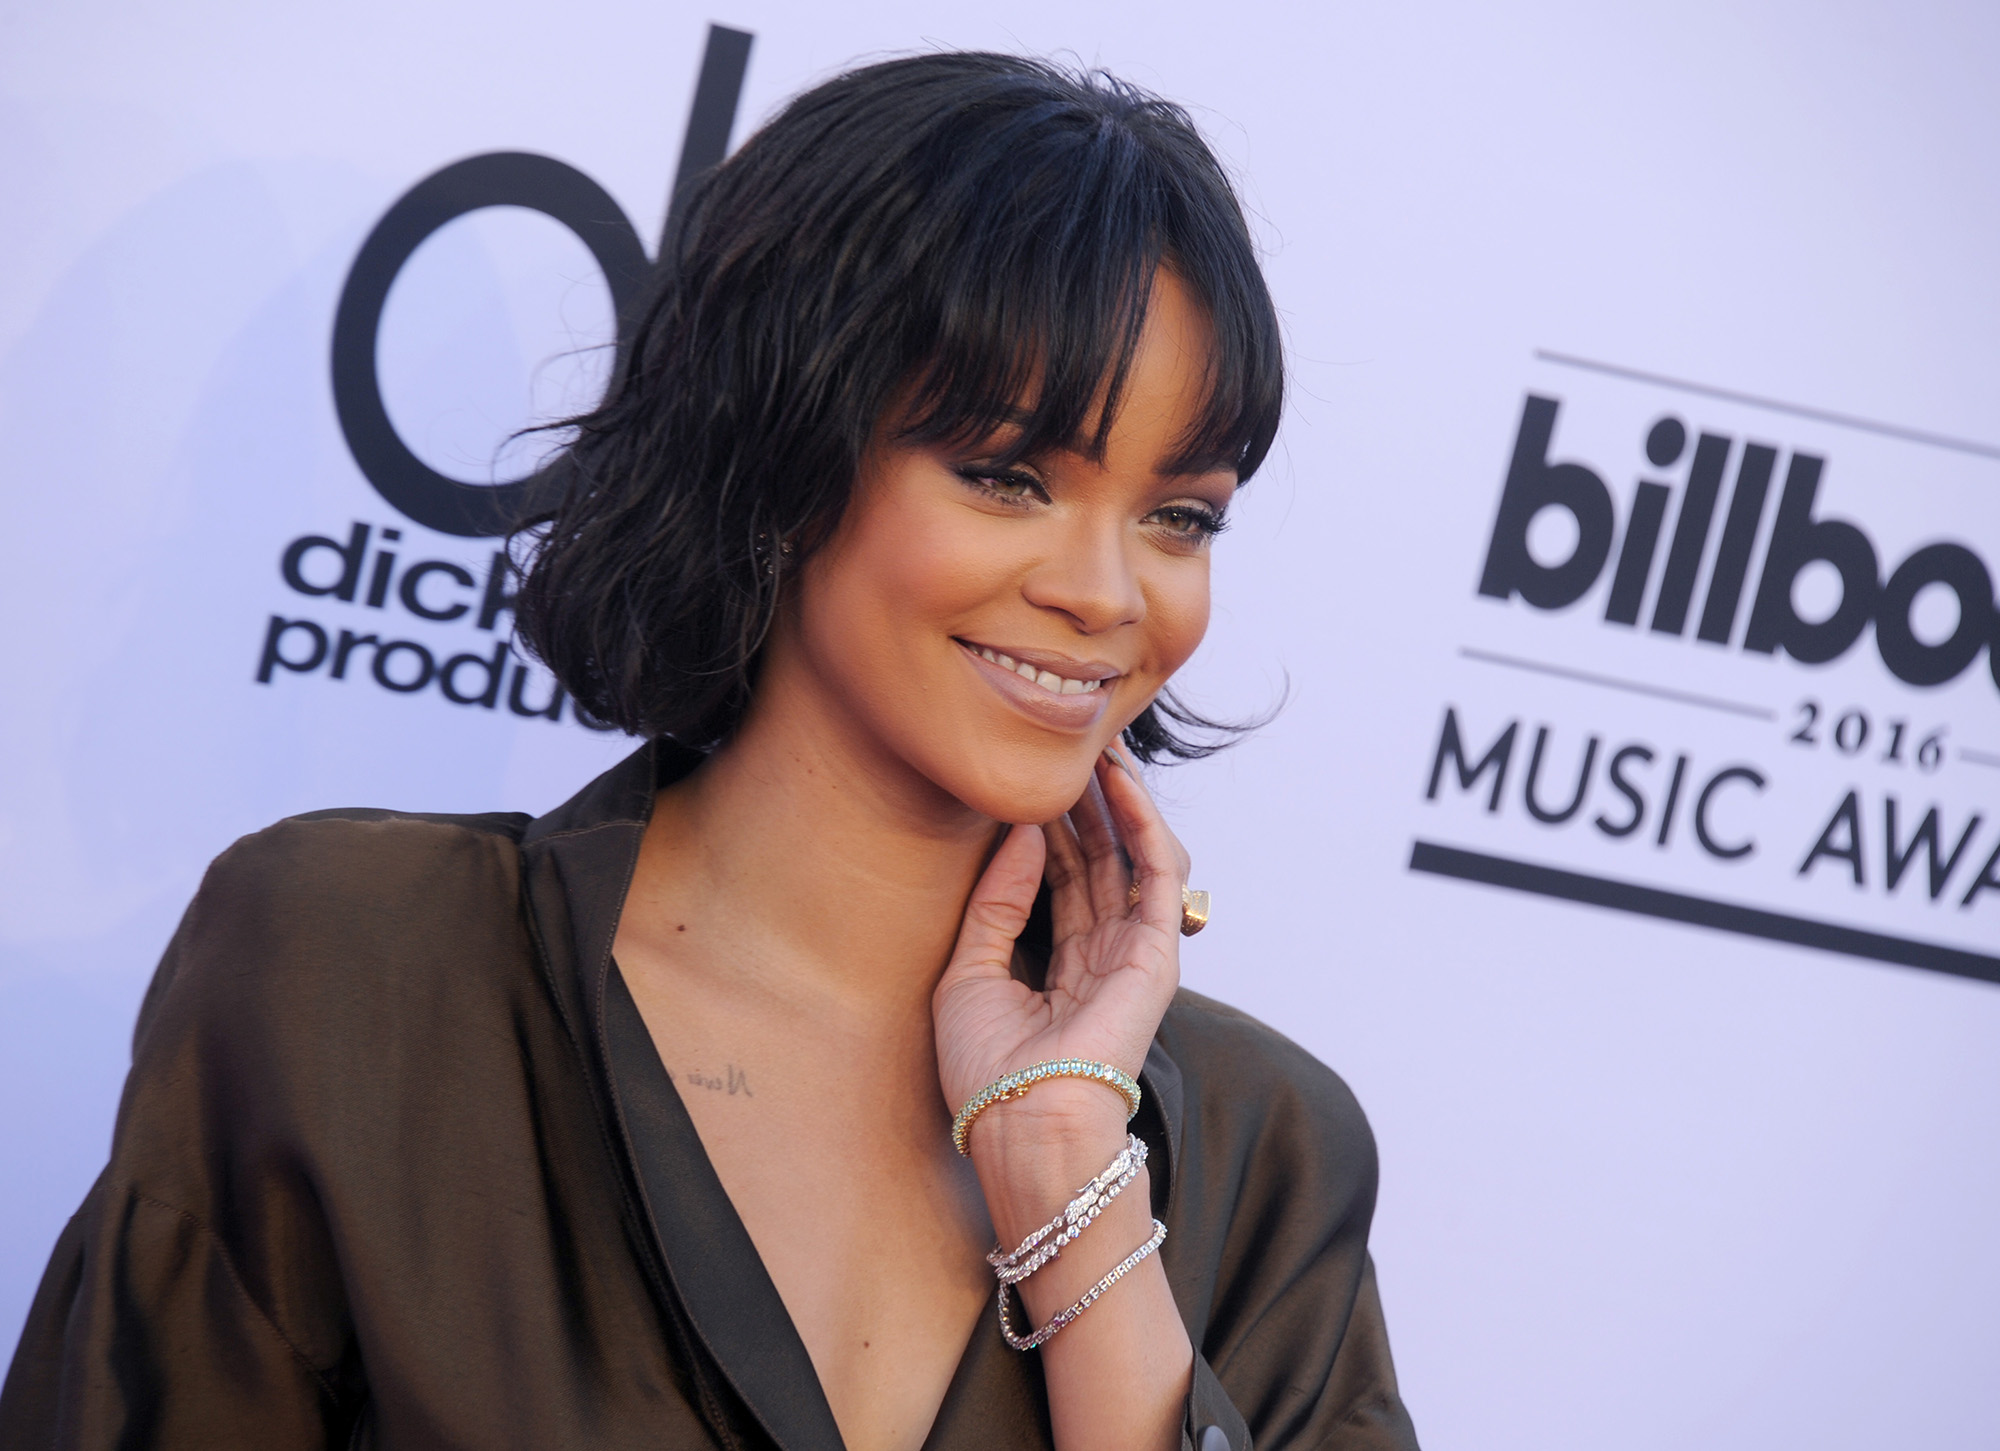 LAS VEGAS, NV - MAY 22:  Singer Rihanna arrives at the 2016 Billboard Music Awards at T-Mobile Arena on May 22, 2016 in Las Vegas, Nevada.  (Photo by Gregg DeGuire/WireImage)